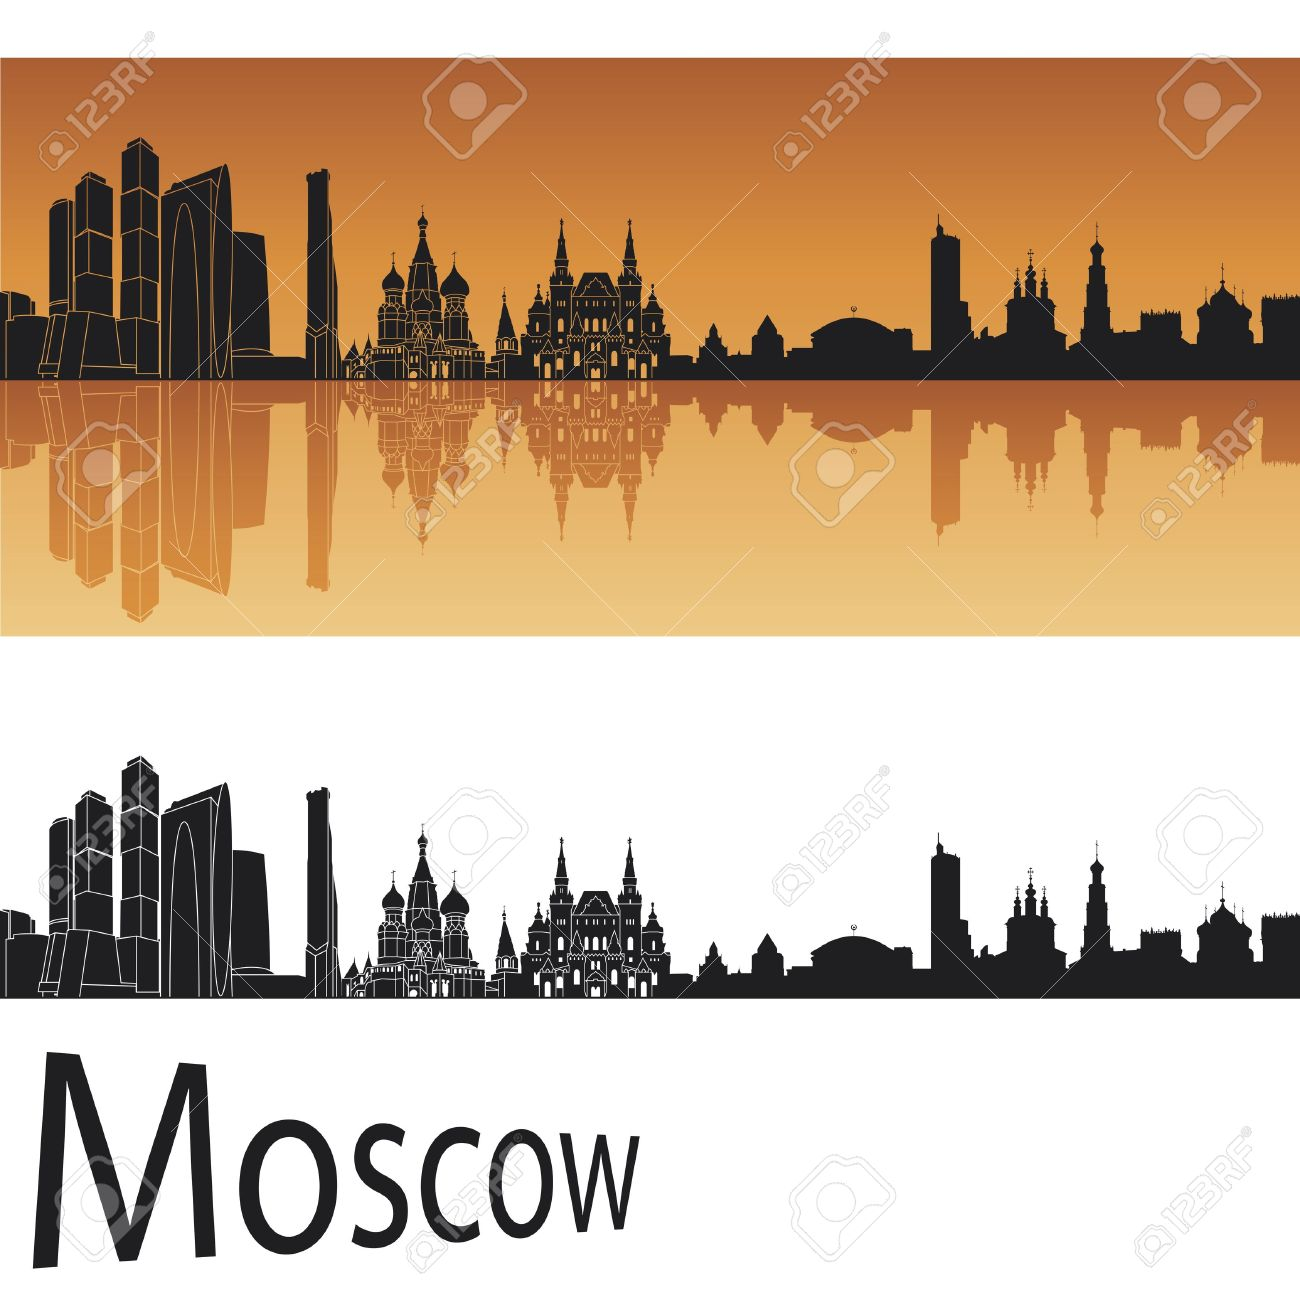 Moscow Skyline In Orange Background Royalty Free Cliparts, Vectors.